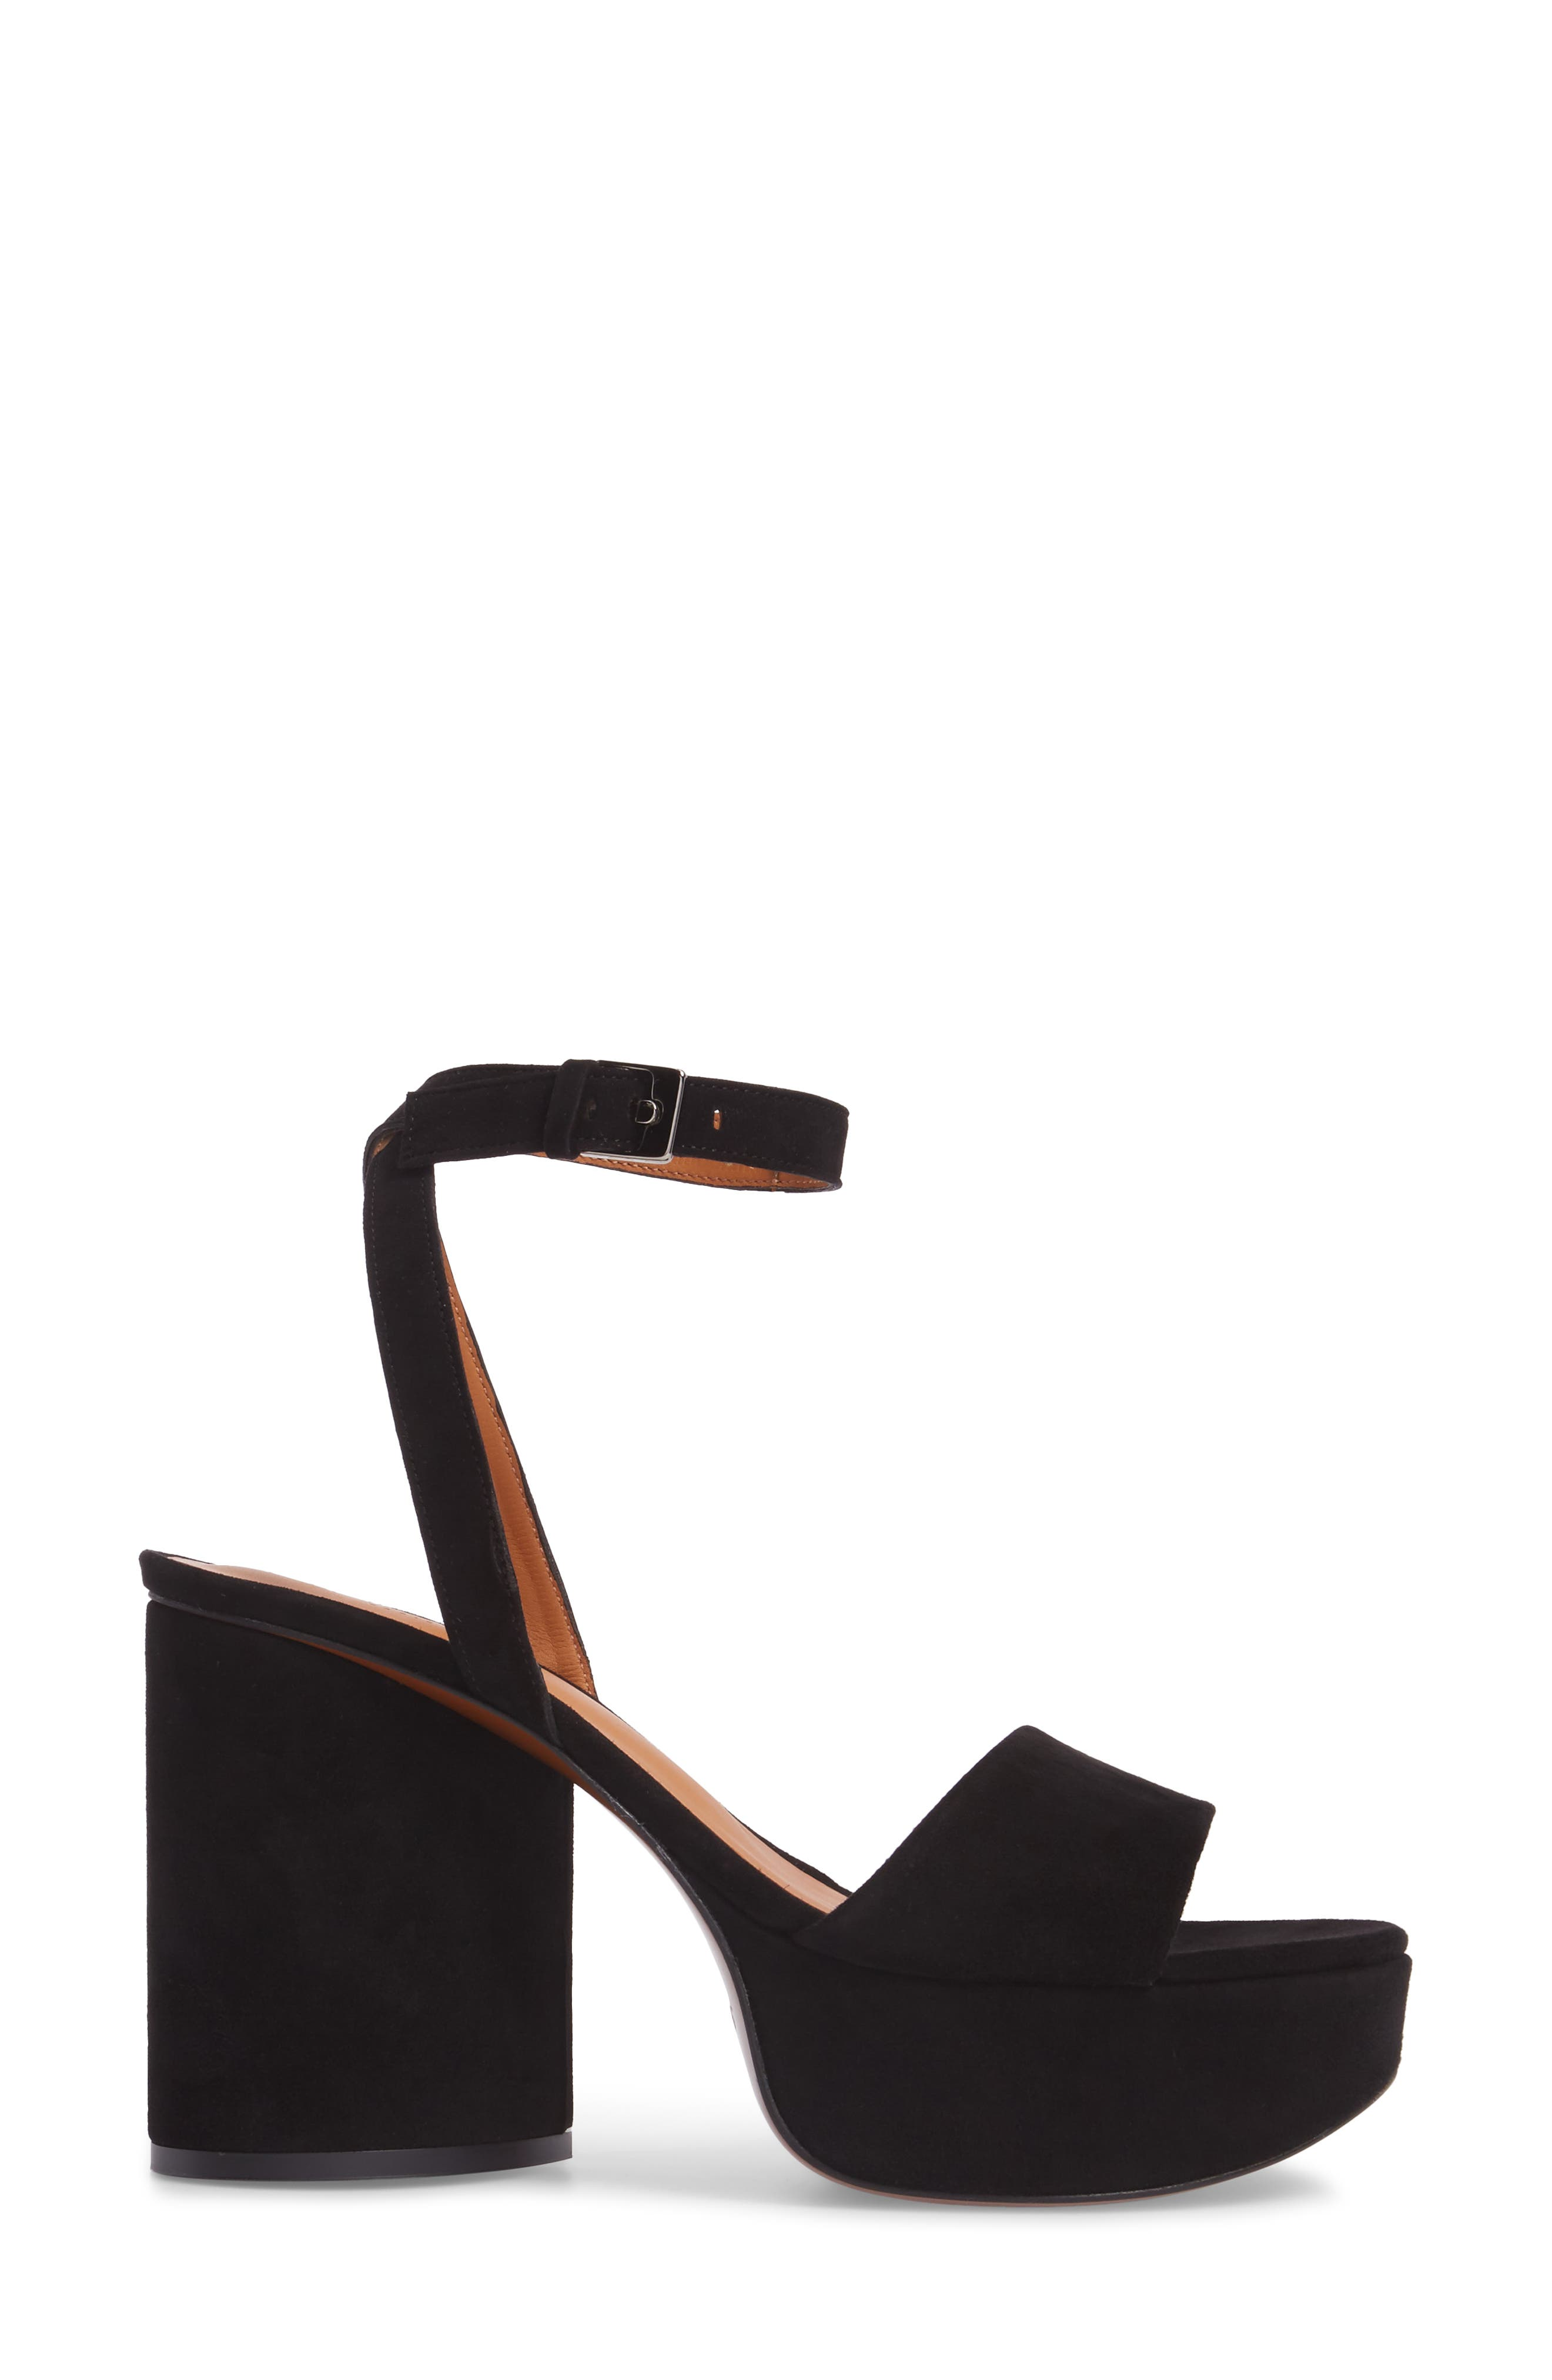 Vionica Platform Ankle Strap Sandal,                             Alternate thumbnail 3, color,                             Black